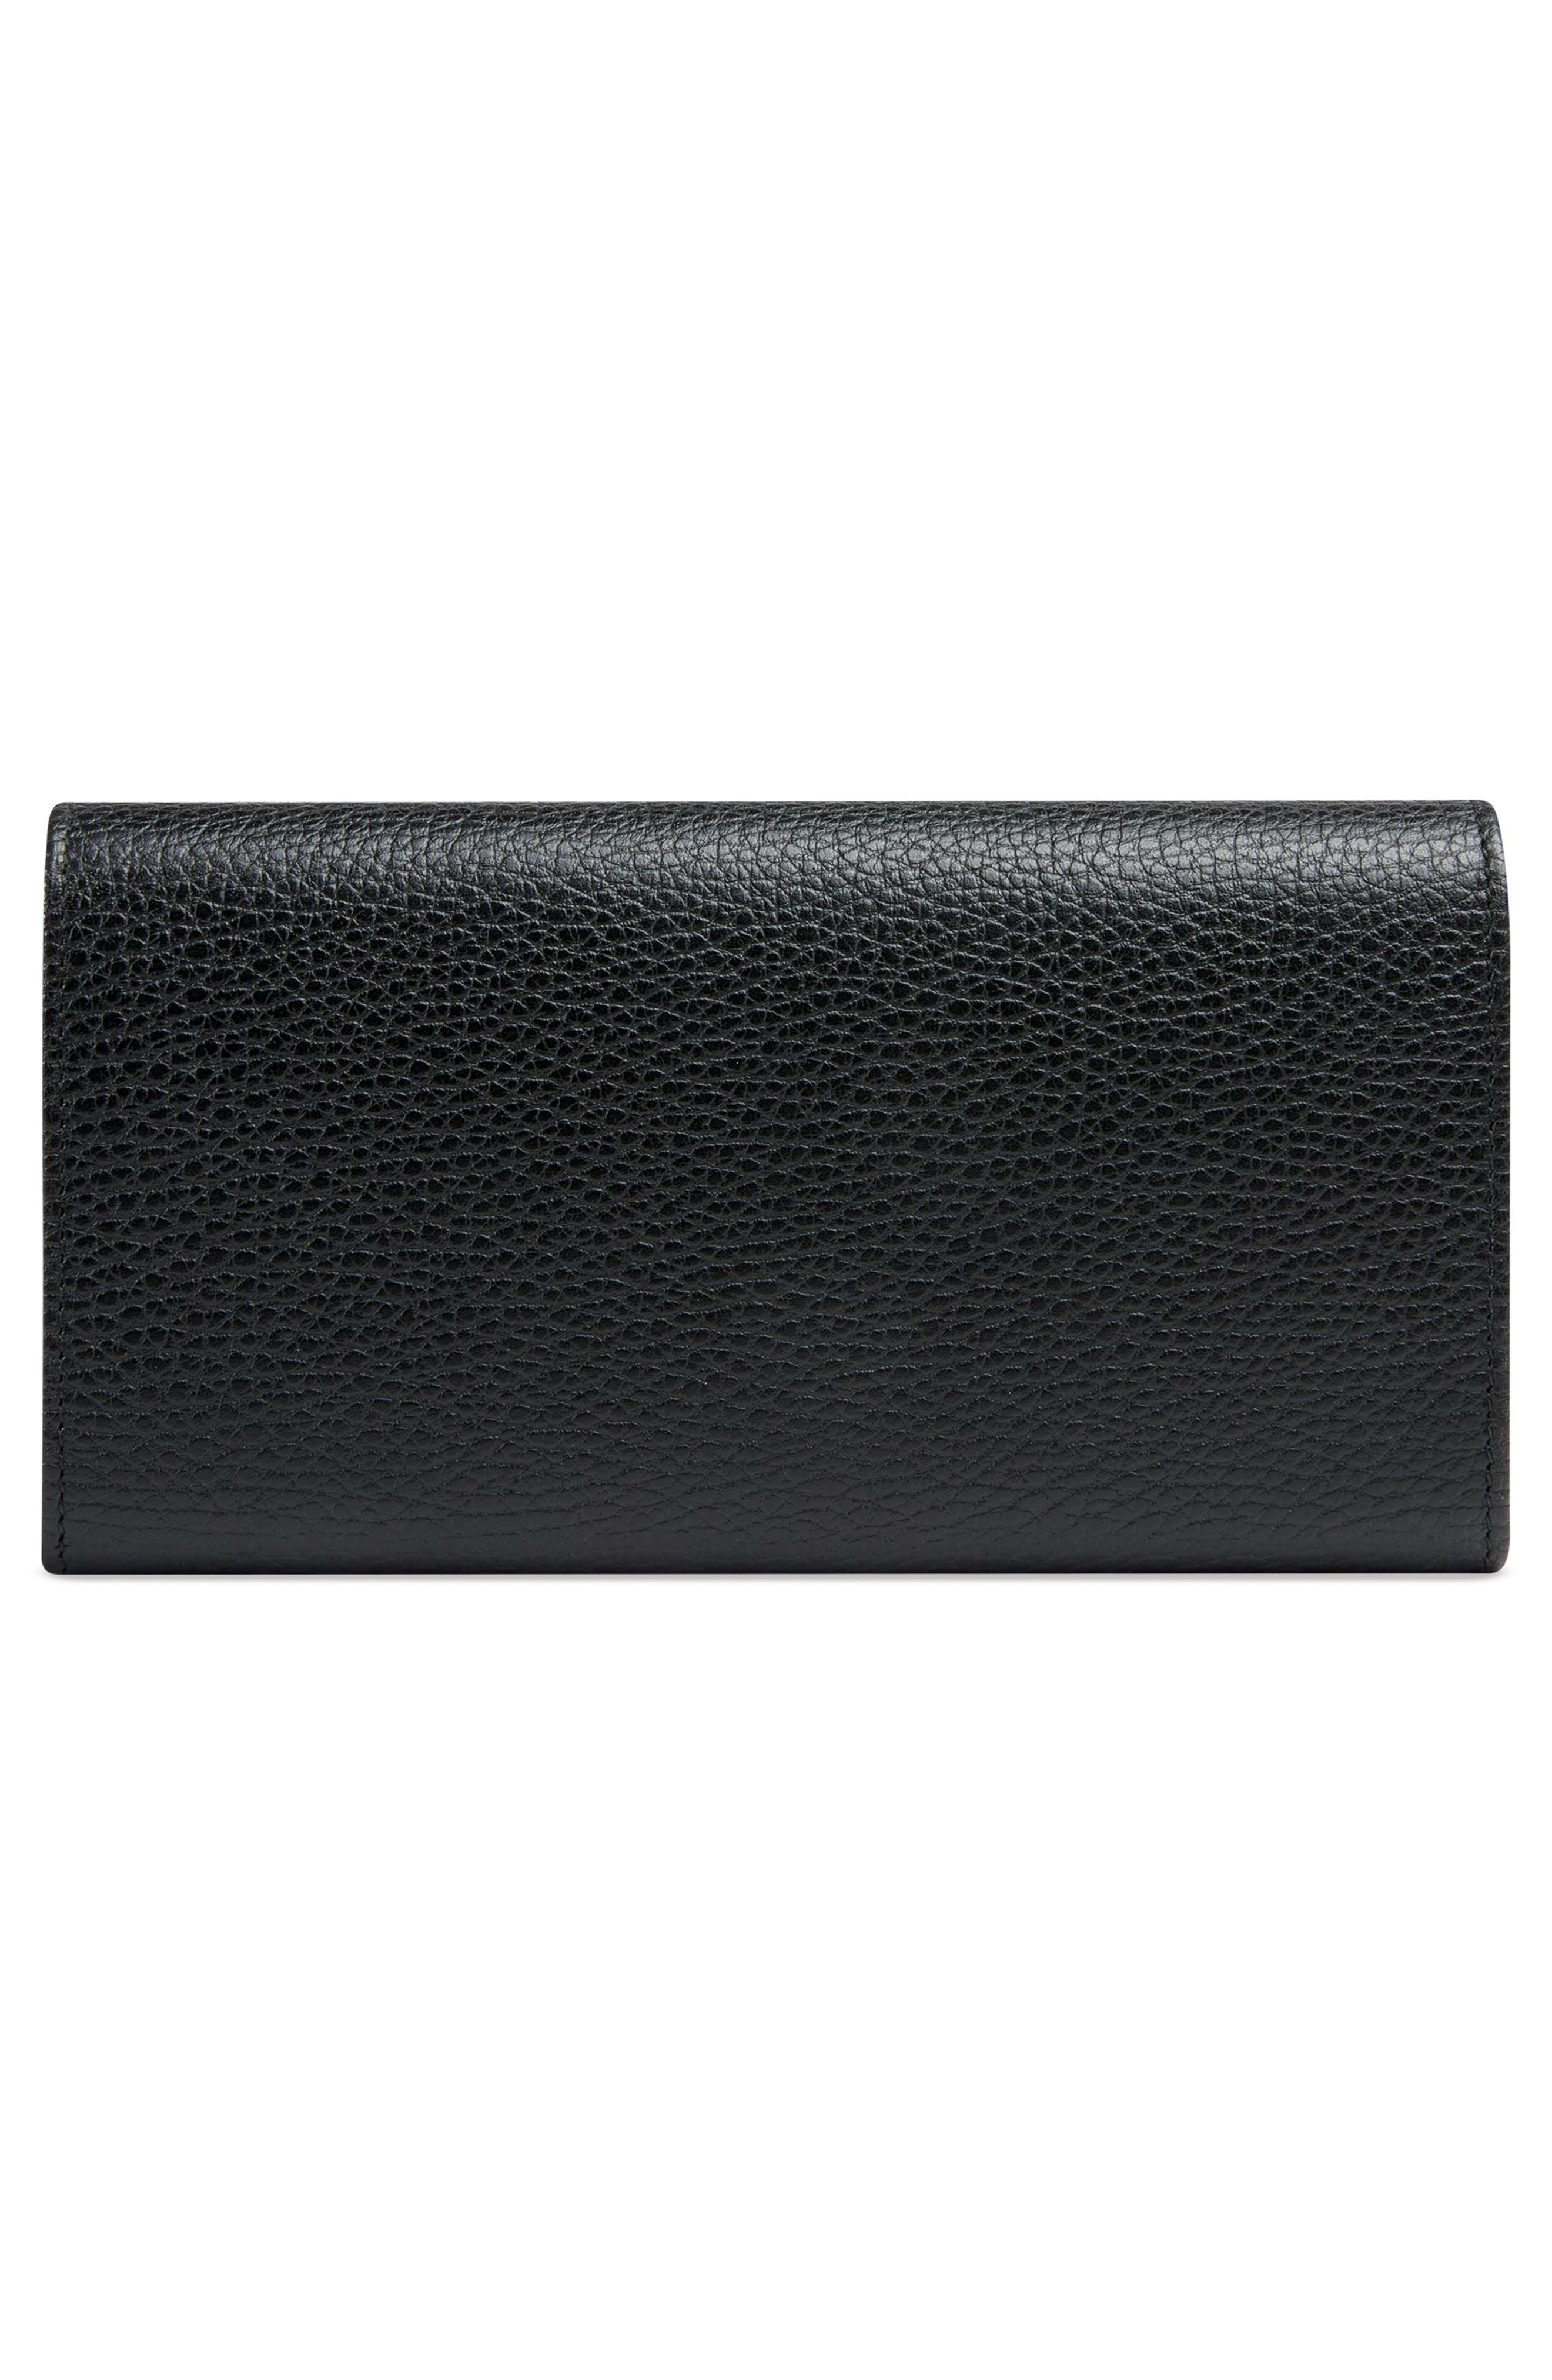 Fiocchino Bow Leather Continental Wallet,                             Alternate thumbnail 3, color,                             001